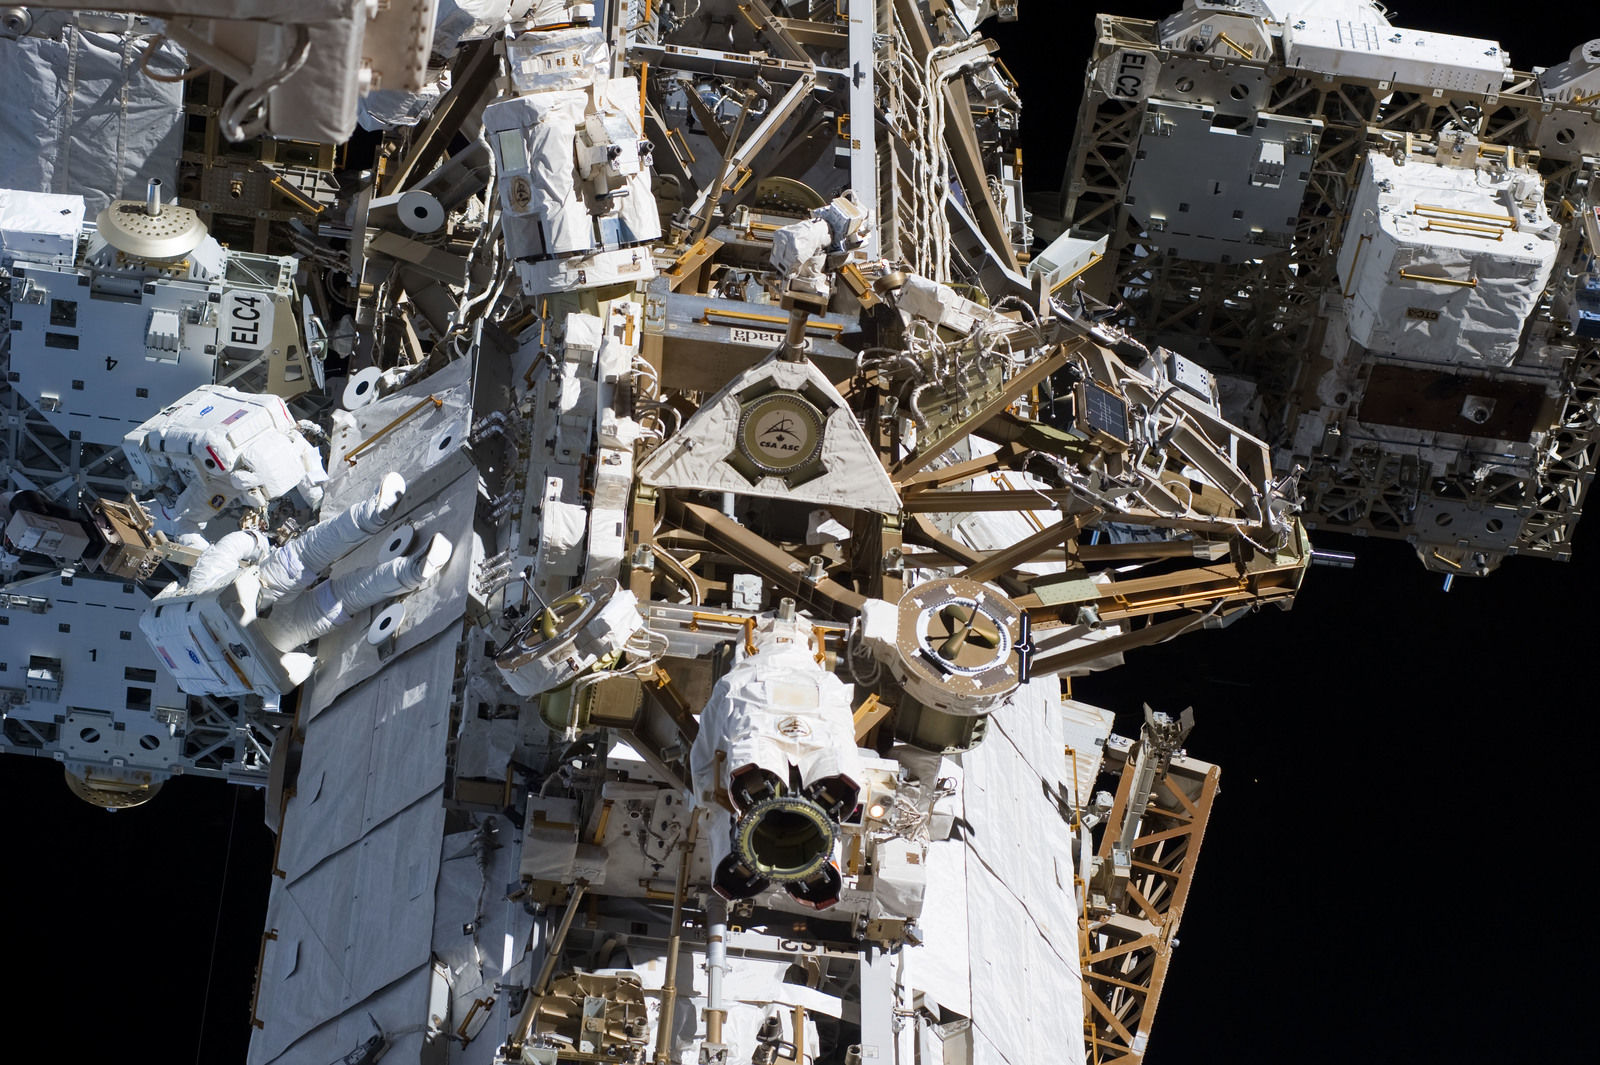 s133E007368 - STS-133